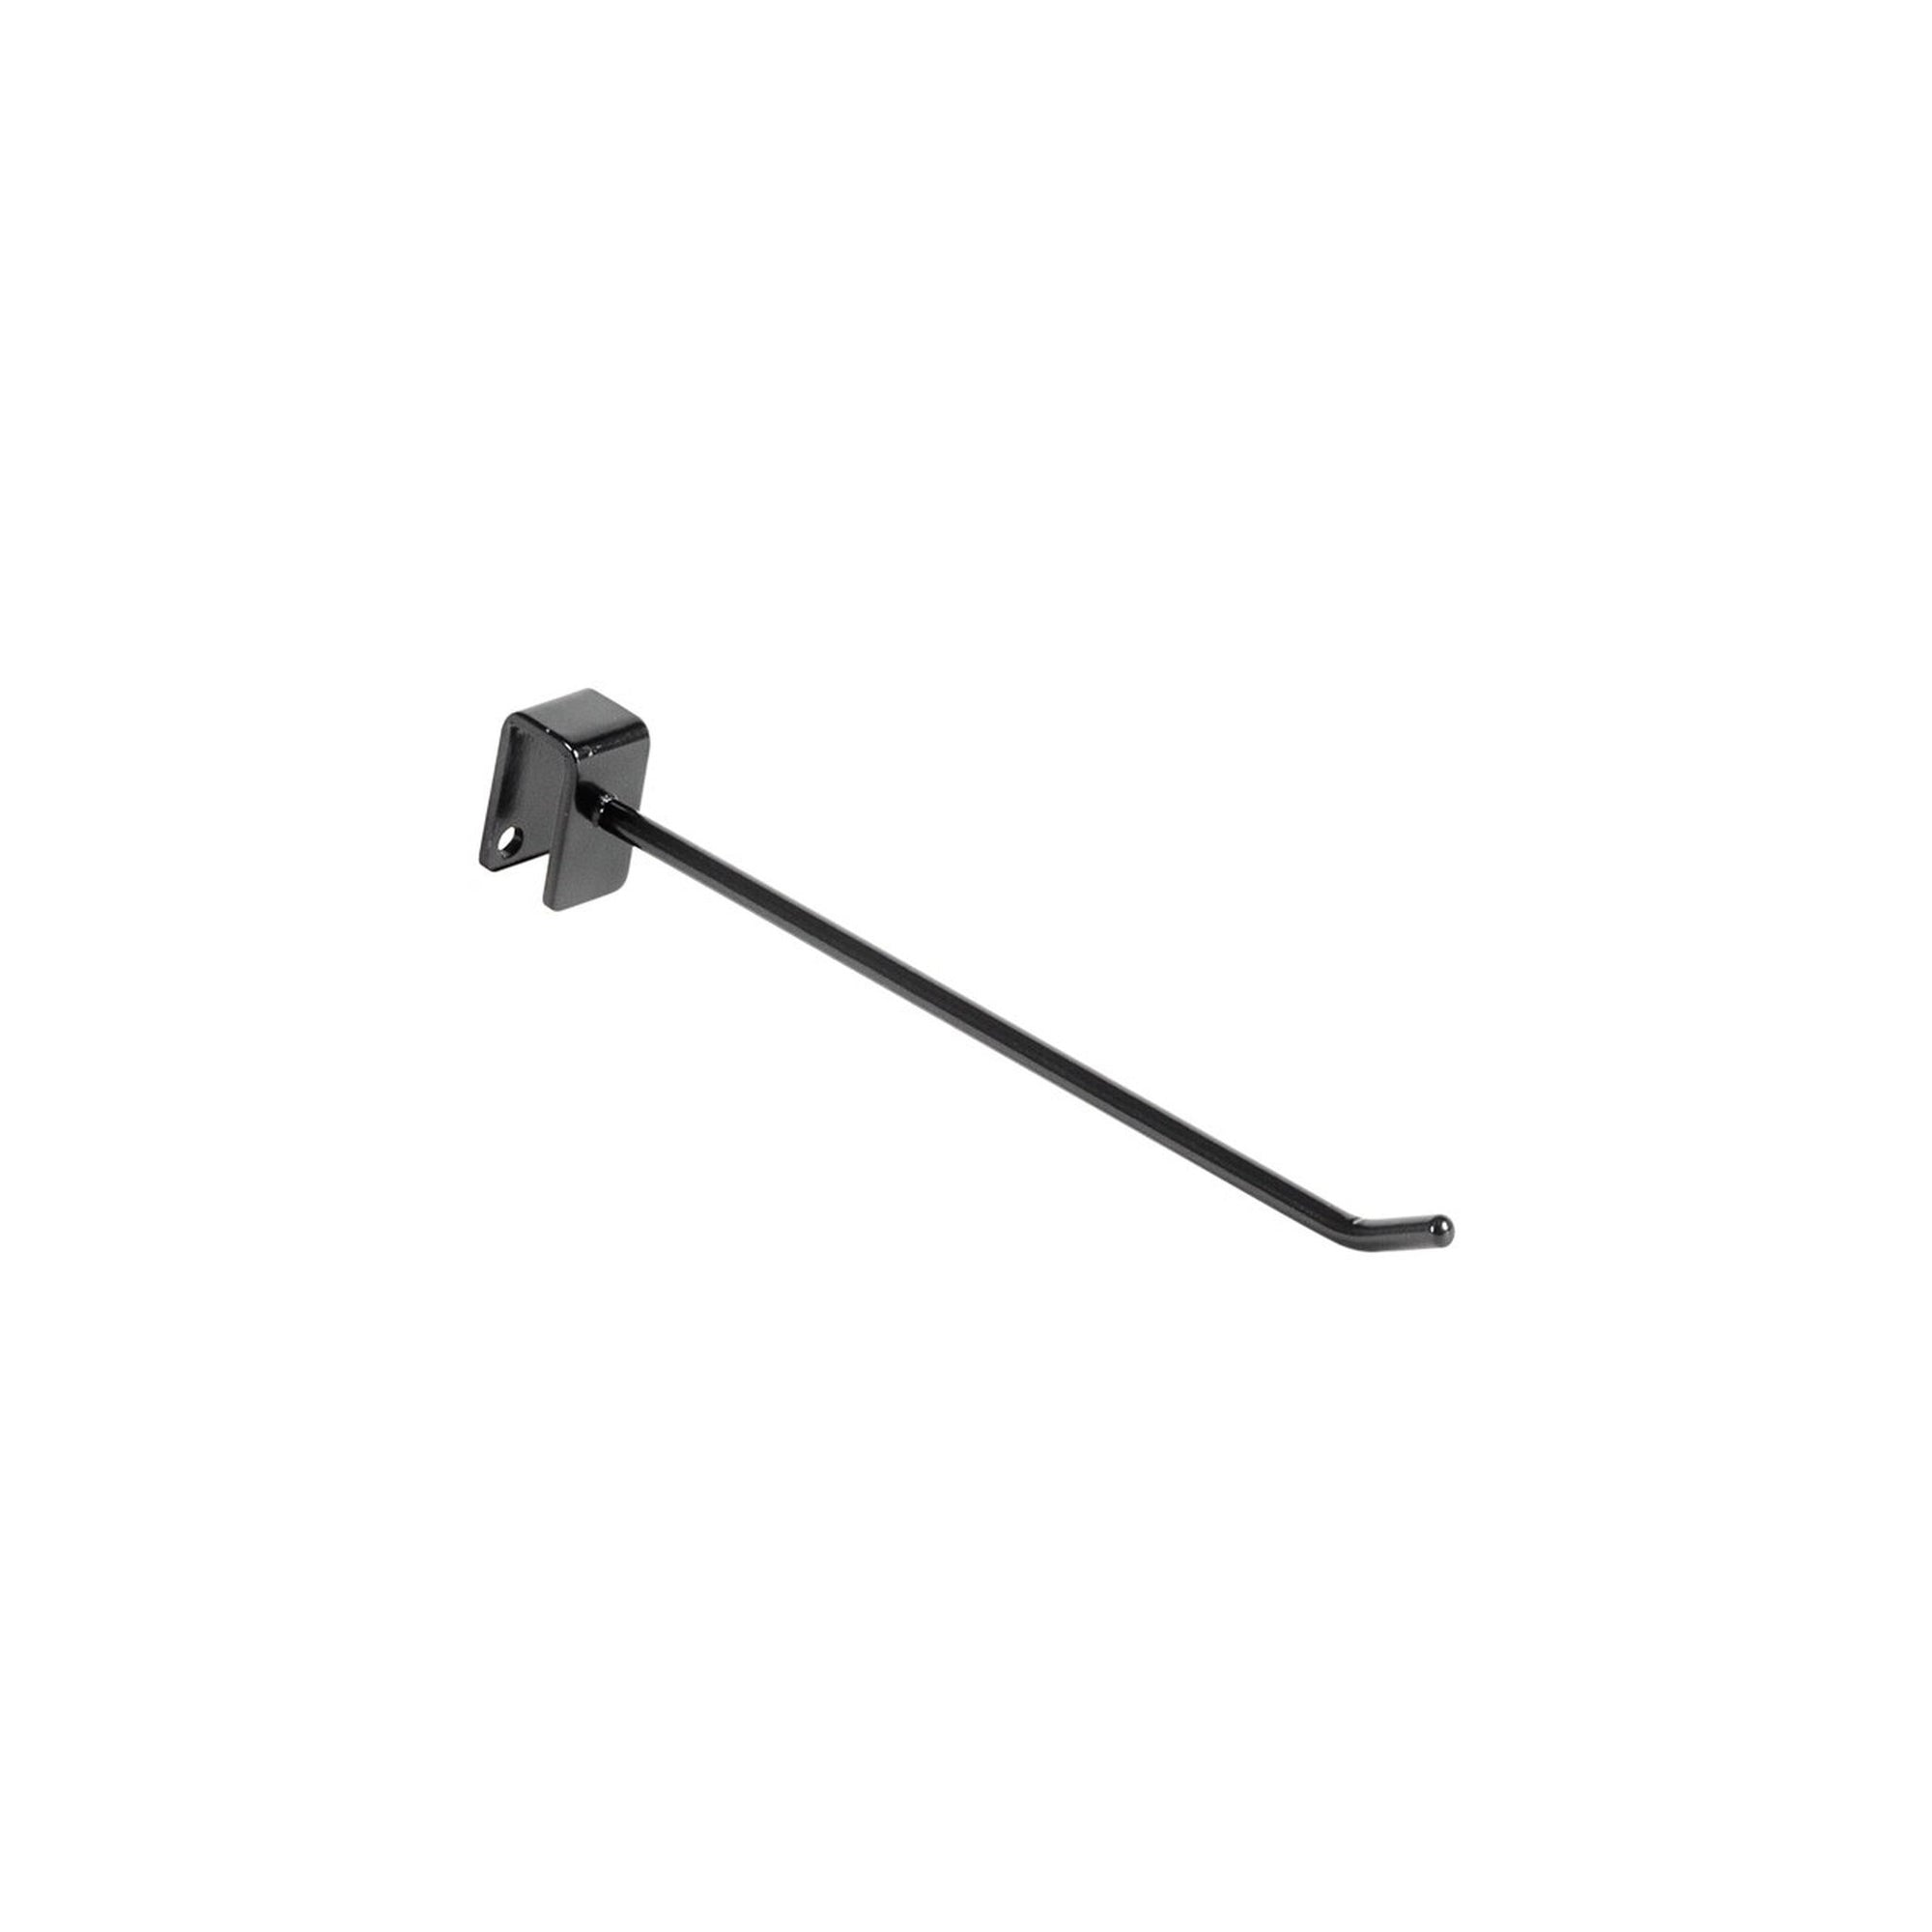 MAXe backrail hook - 200mm D x 6mm DIA wire (E4920)